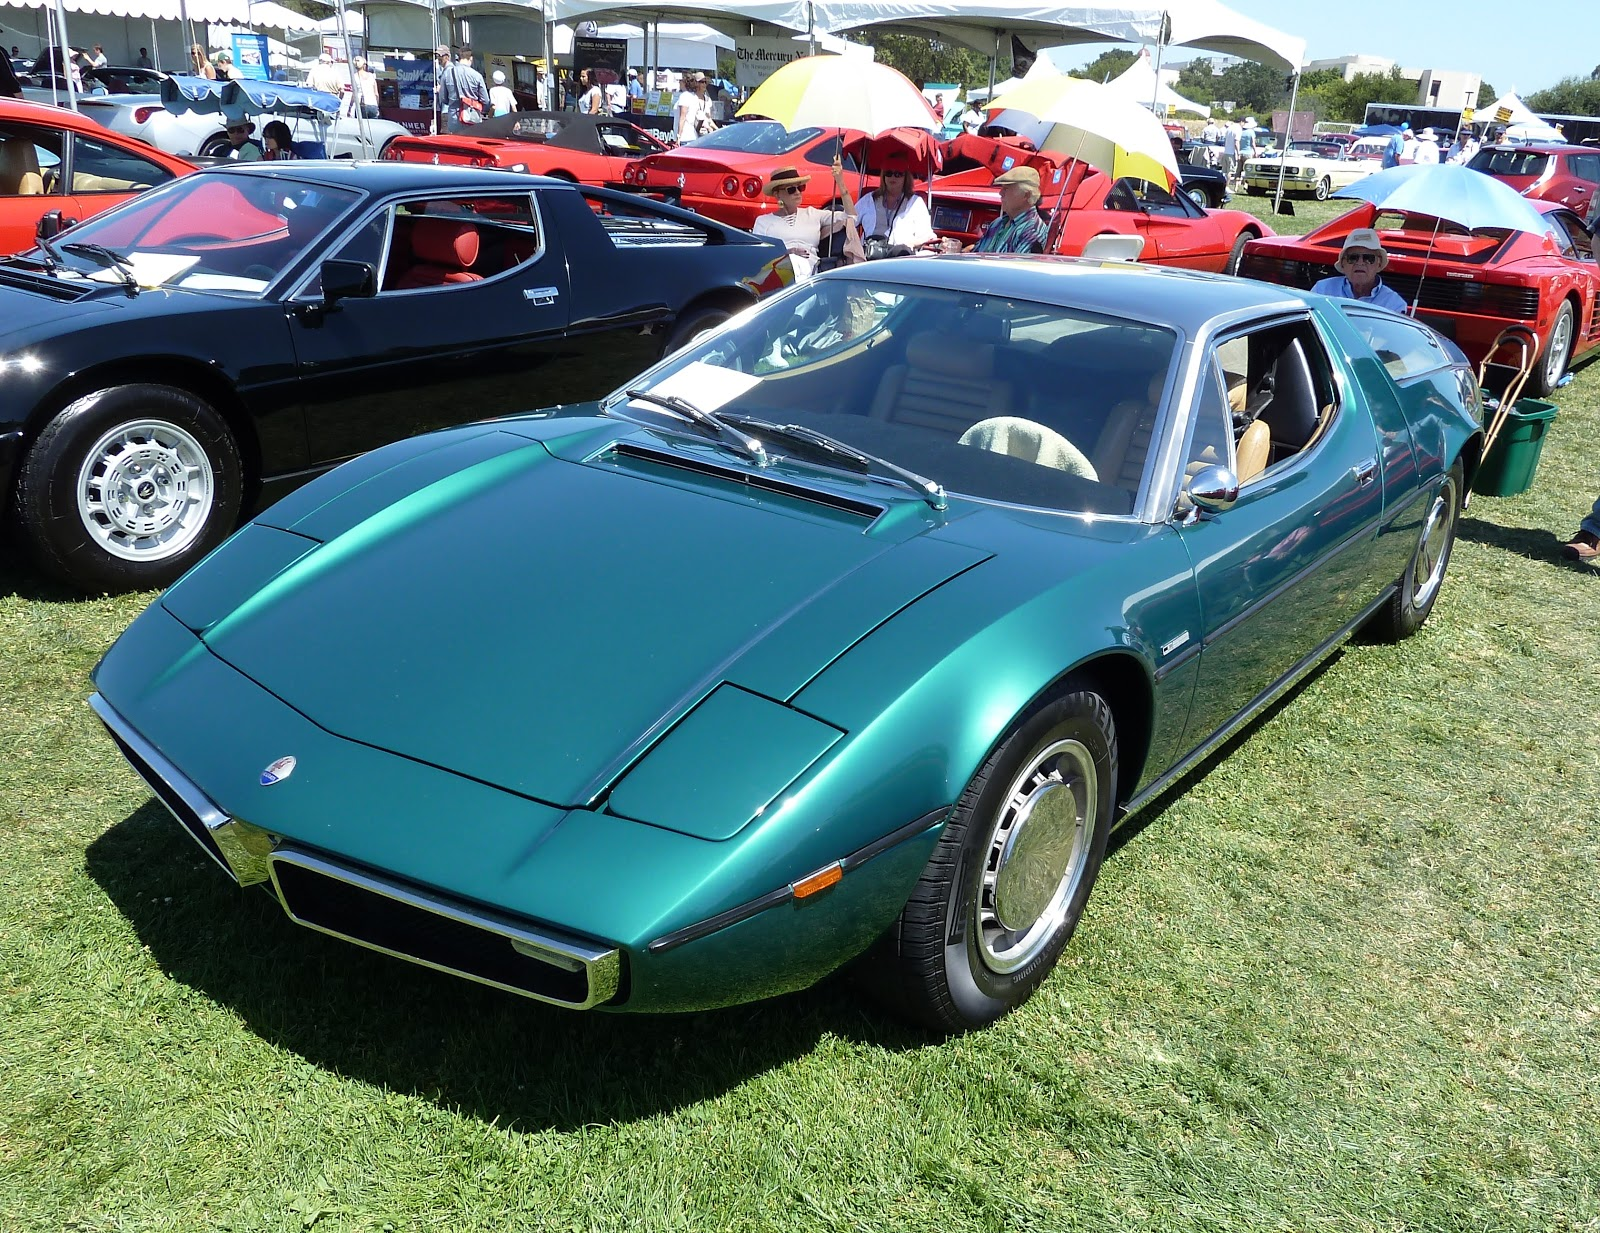 maserati bora and iso grifo why the big difference in value. Black Bedroom Furniture Sets. Home Design Ideas